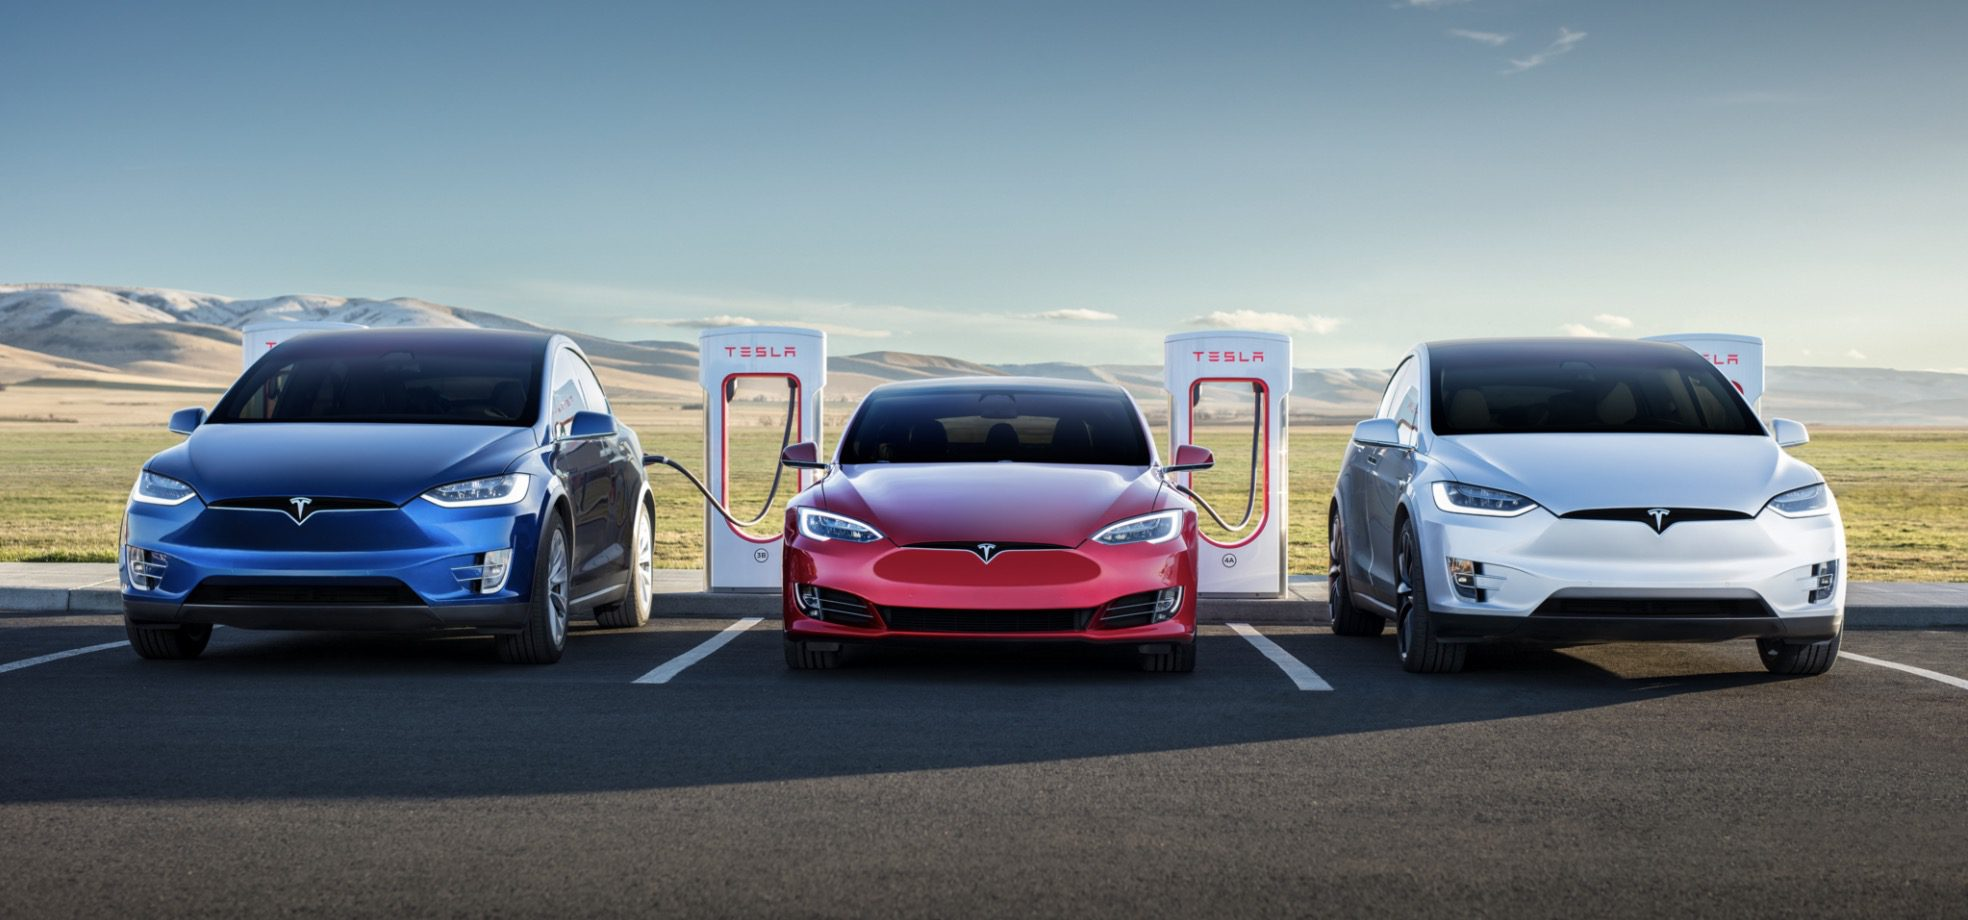 Tesla brings back Free Unlimited Supercharging again to sell inventory cars